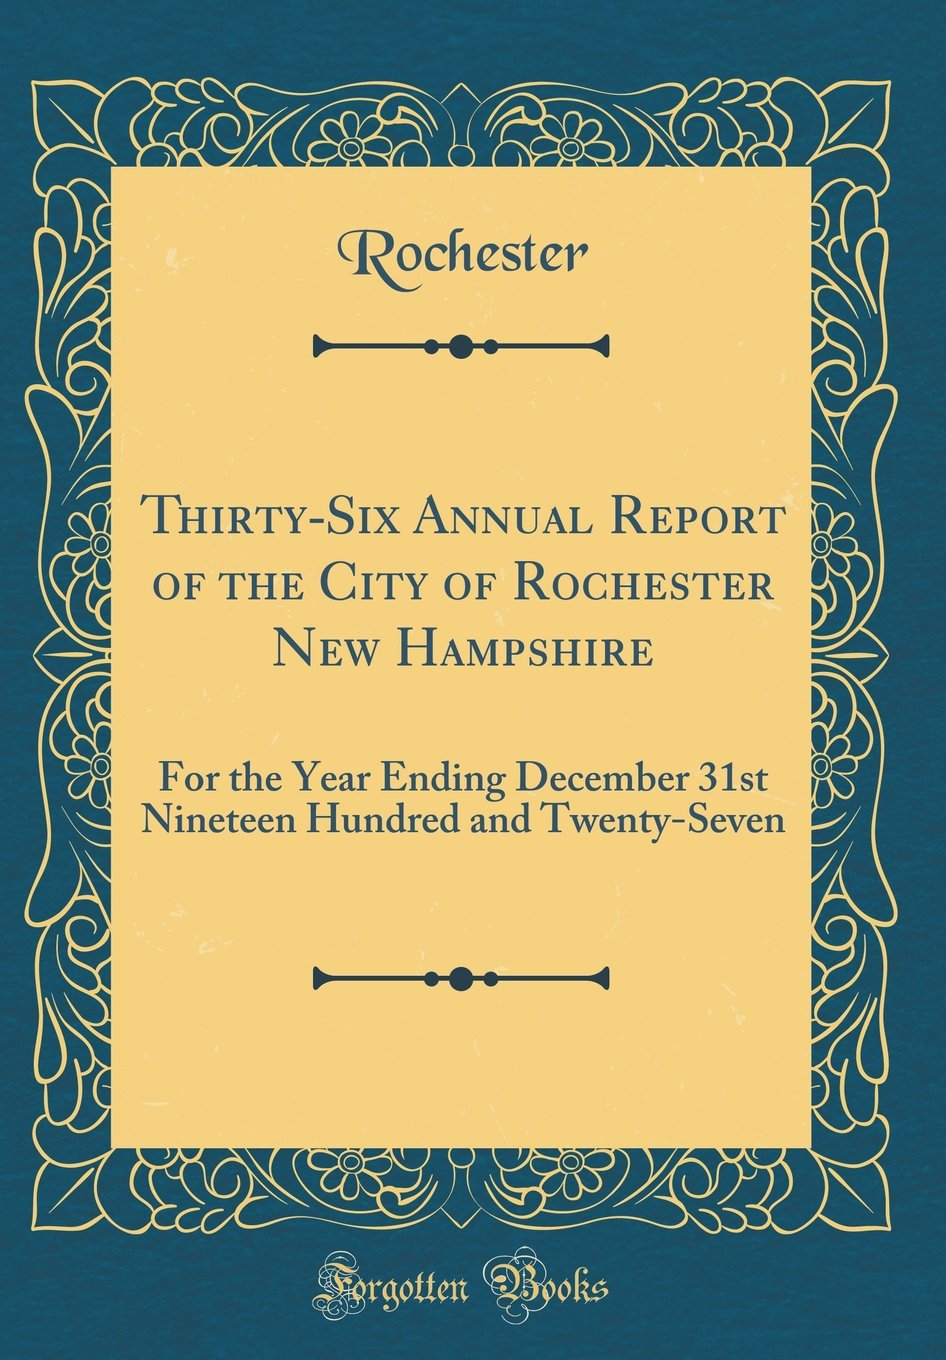 Thirty-Six Annual Report of the City of Rochester New Hampshire: For the Year Ending December 31st Nineteen Hundred and Twenty-Seven (Classic Reprint) PDF